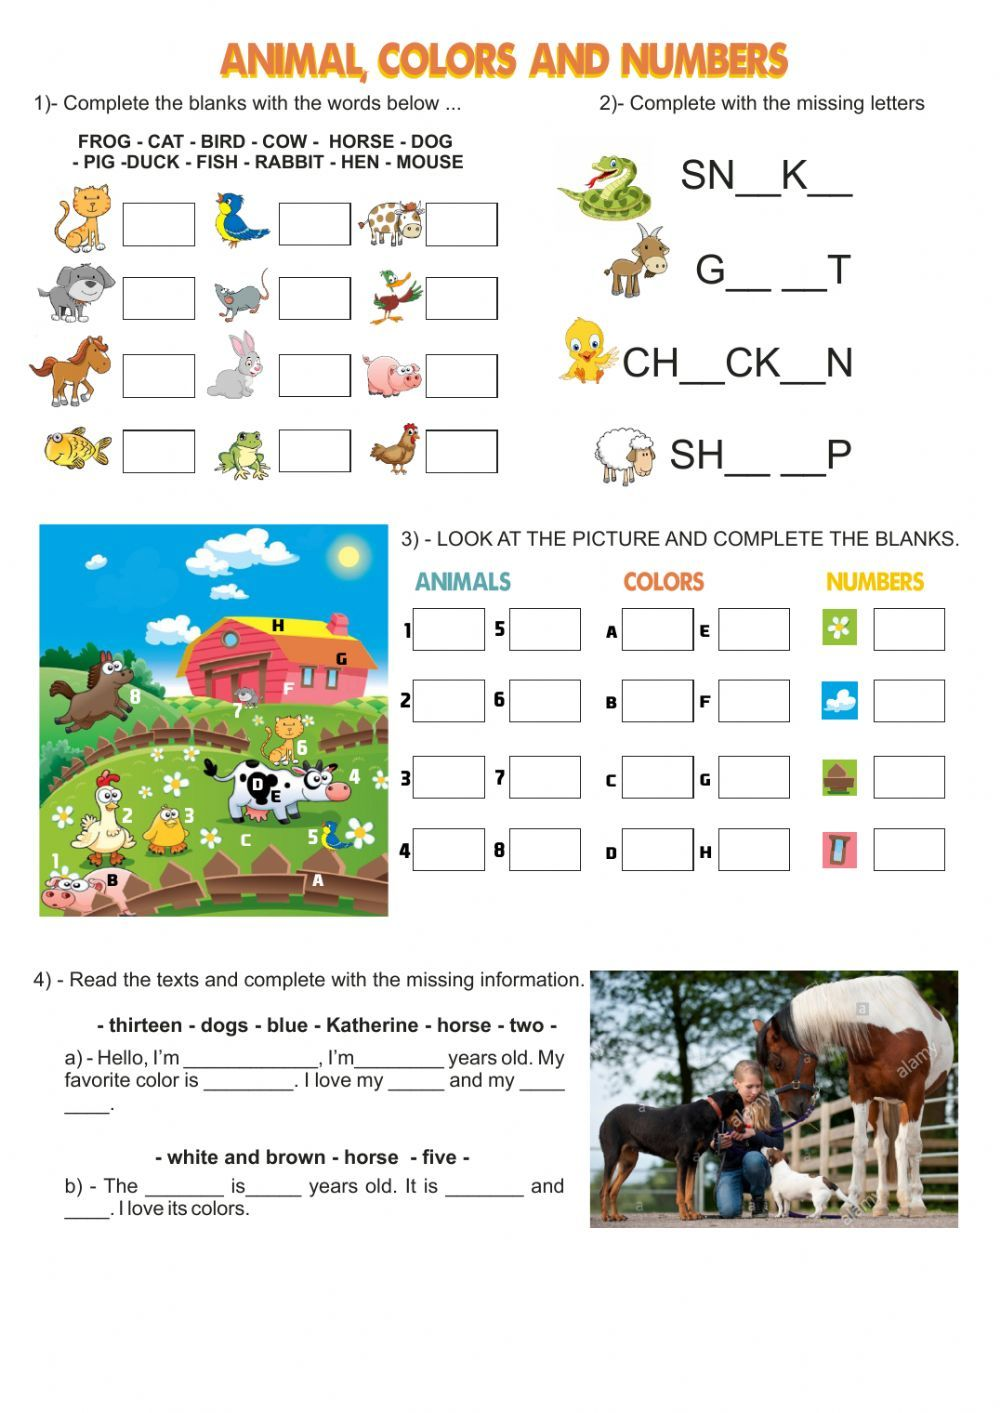 Animals Colors Numbers School Objects Interactive Worksheet English Worksheets For Kids Color Worksheets Worksheets For Kids [ 1413 x 1000 Pixel ]